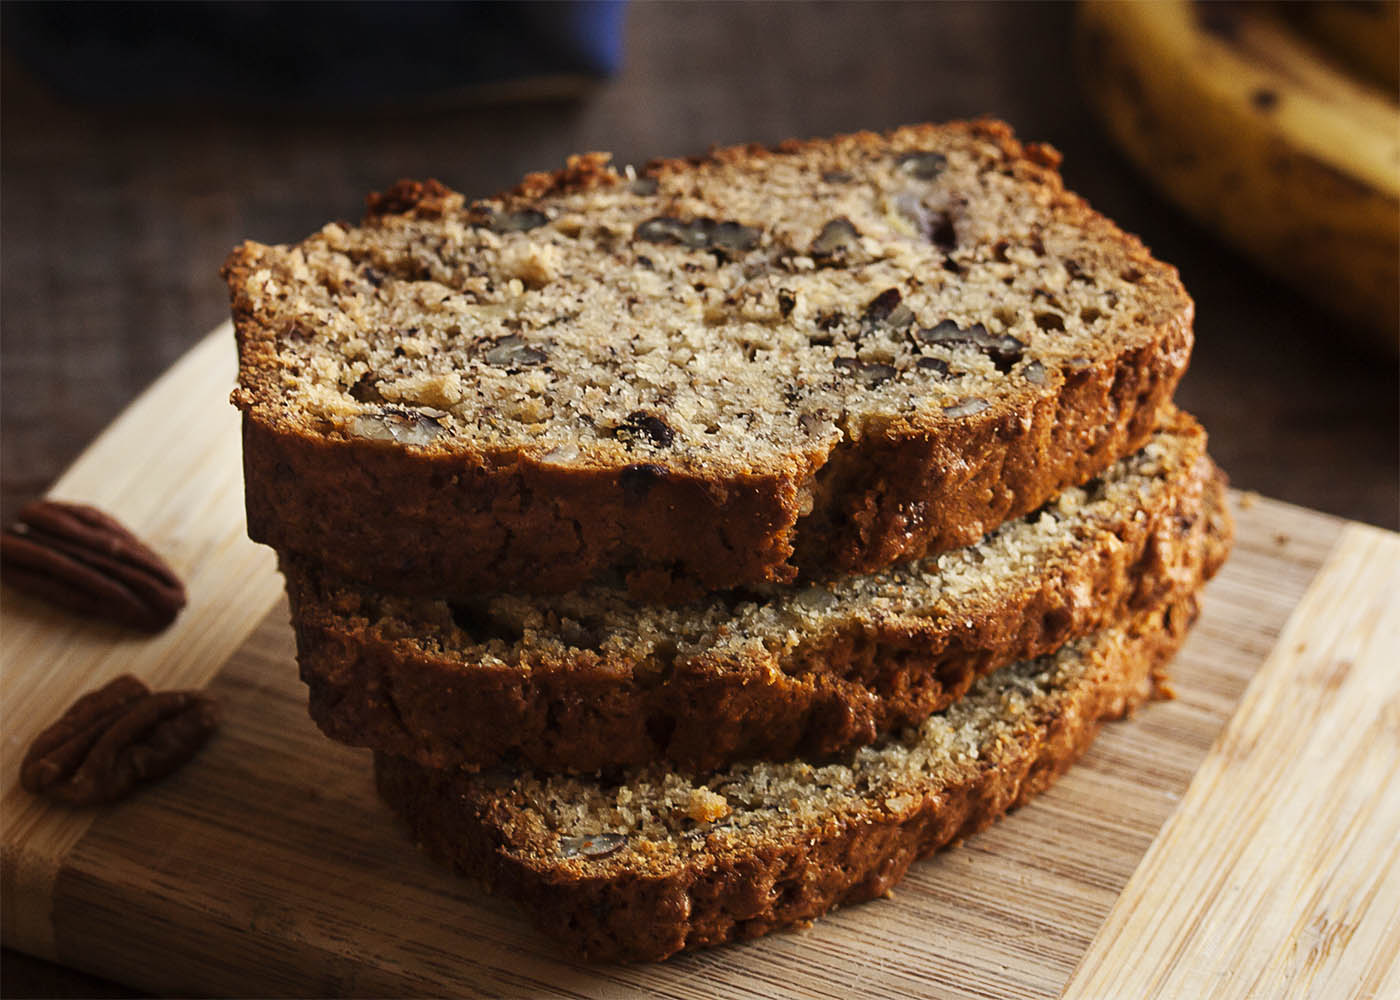 Bourbon Pecan Banana Bread - This bourbon pecan banana bread is a great basic banana bread! Dense and moist and full of lots of banana flavor, all enhanced with a dollop of bourbon. This is a recipe you will make again and again.   justalittlebitofbacon.com